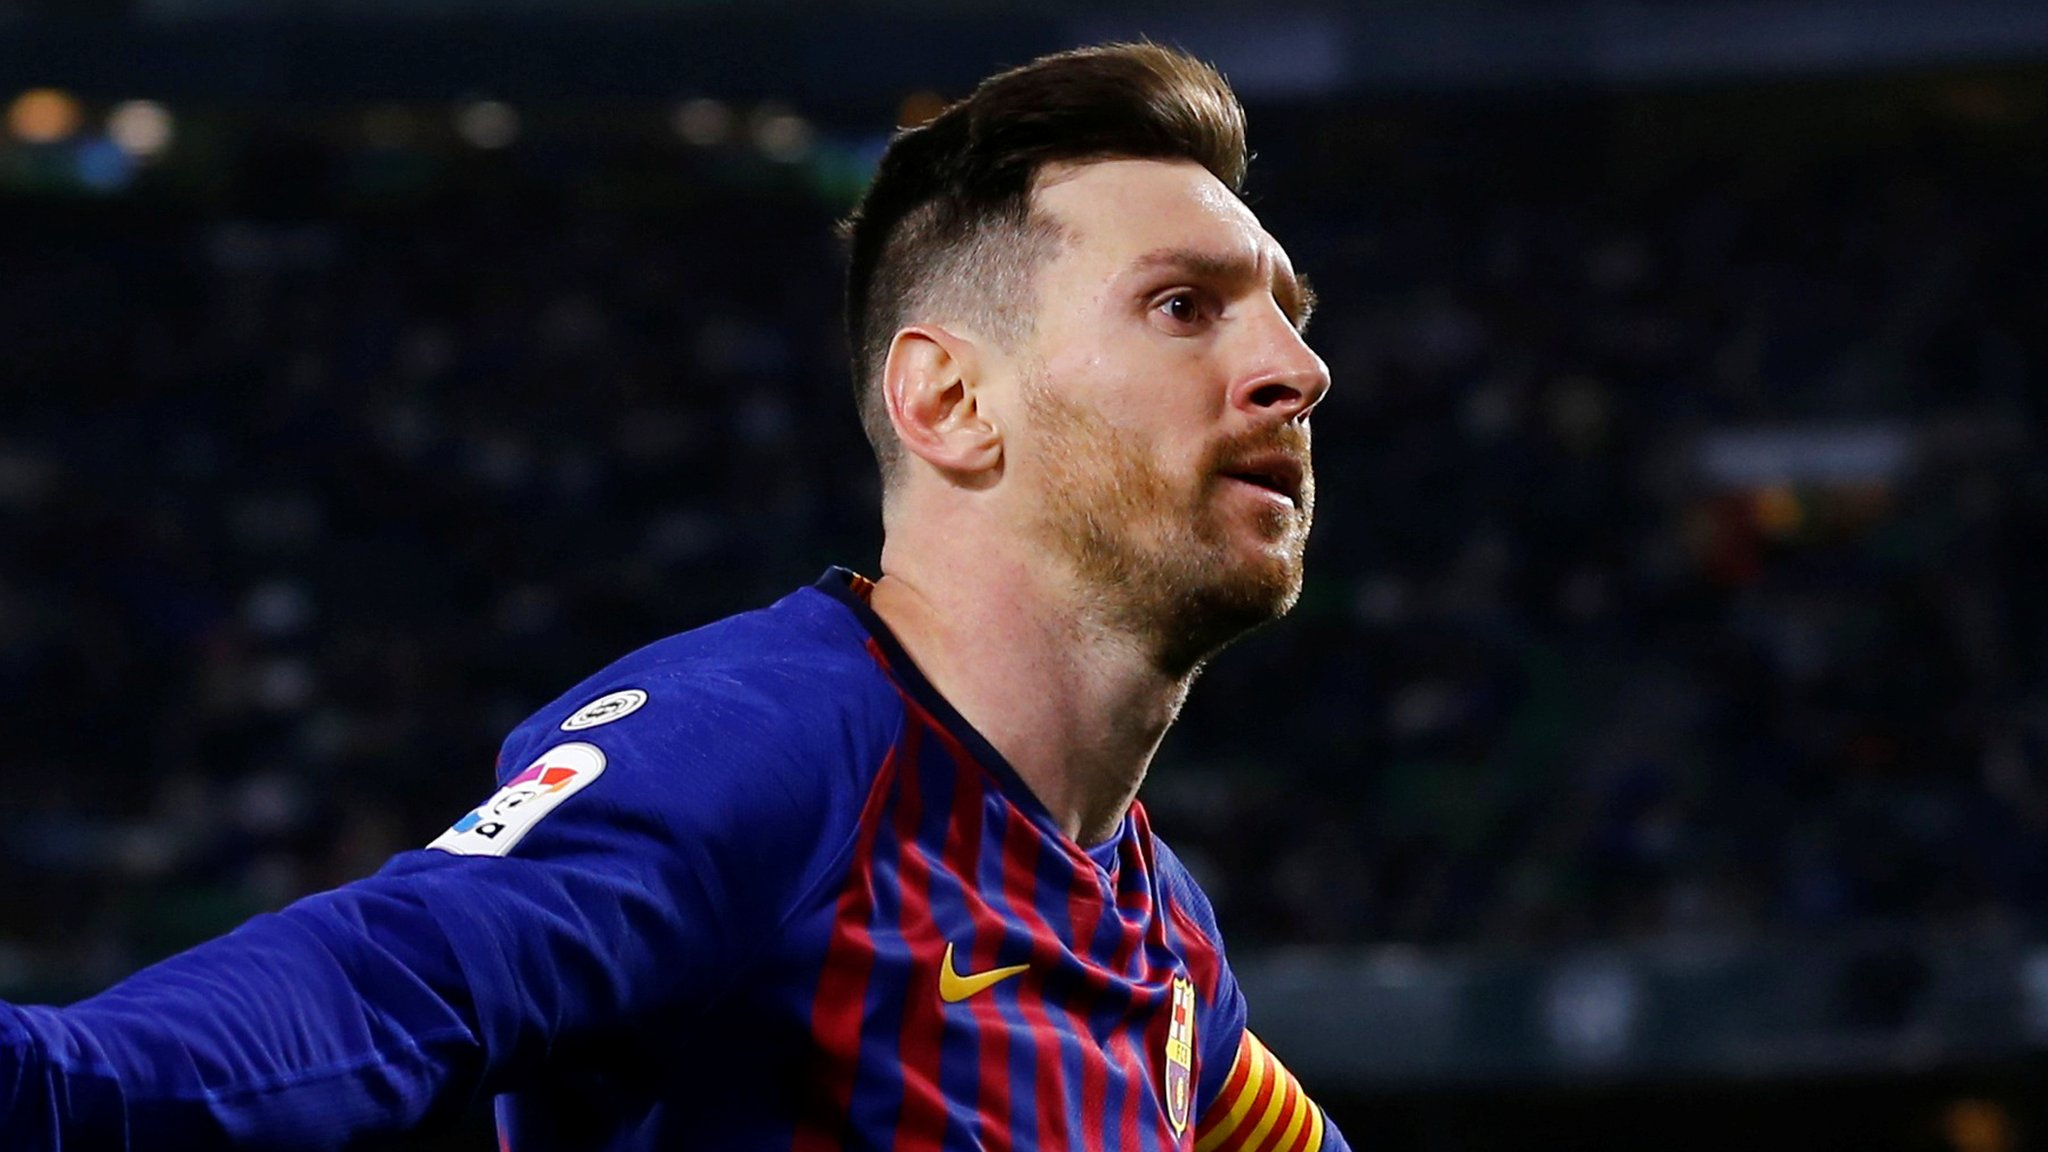 Lionel Messi: Barcelona forward's superb hat-trick sees off Real Betis